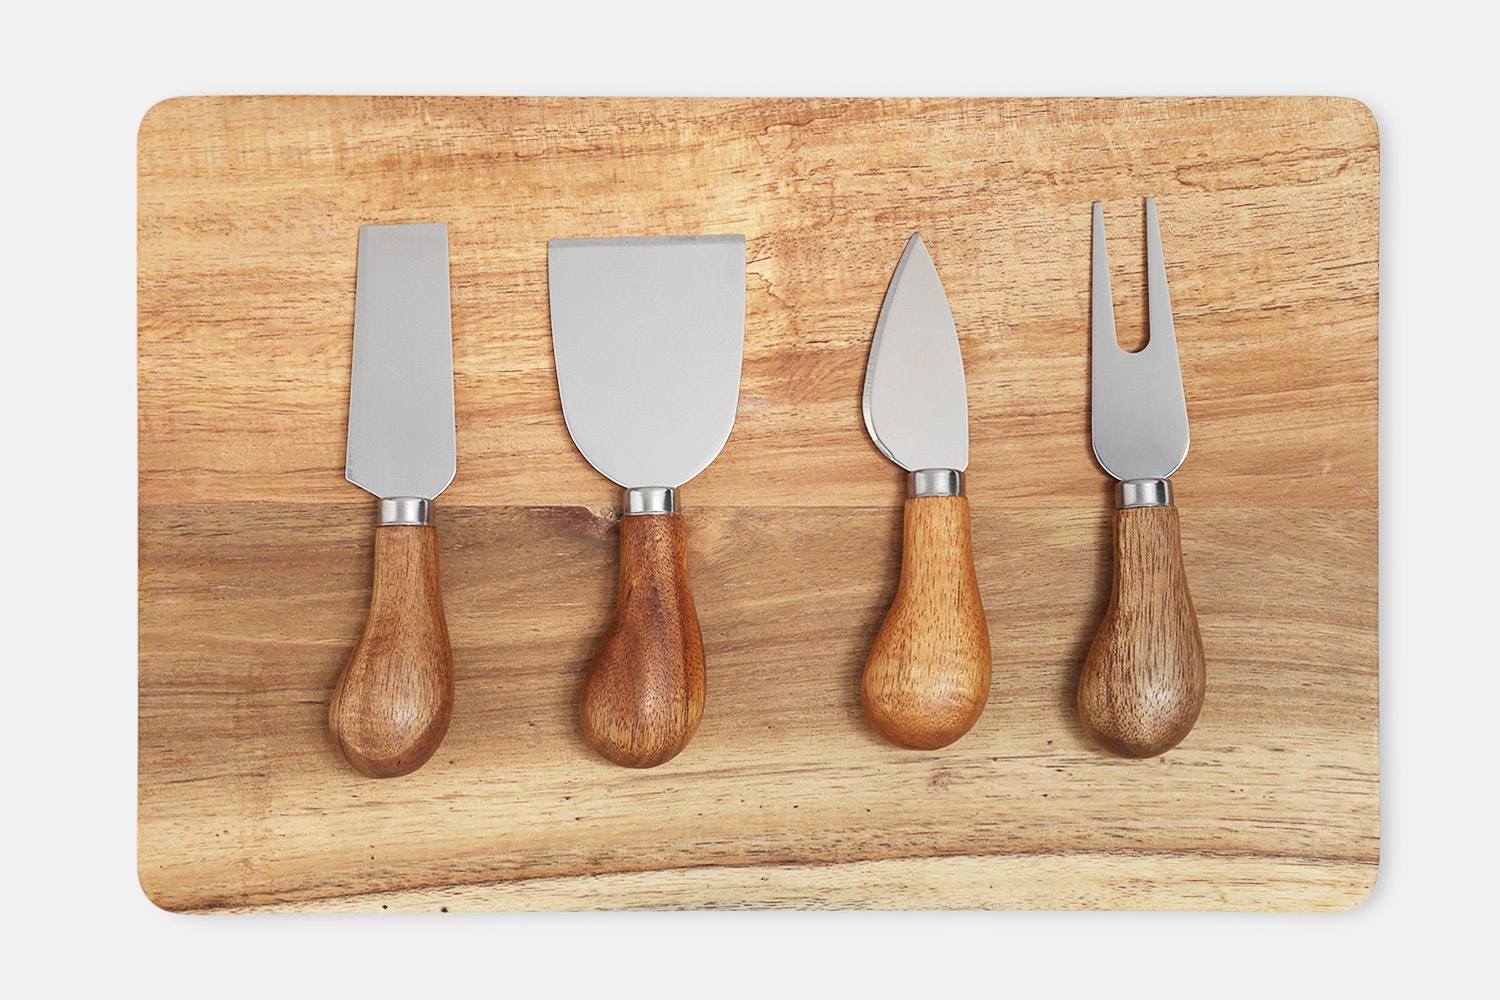 Taylor's Cheese Board & Knife Set